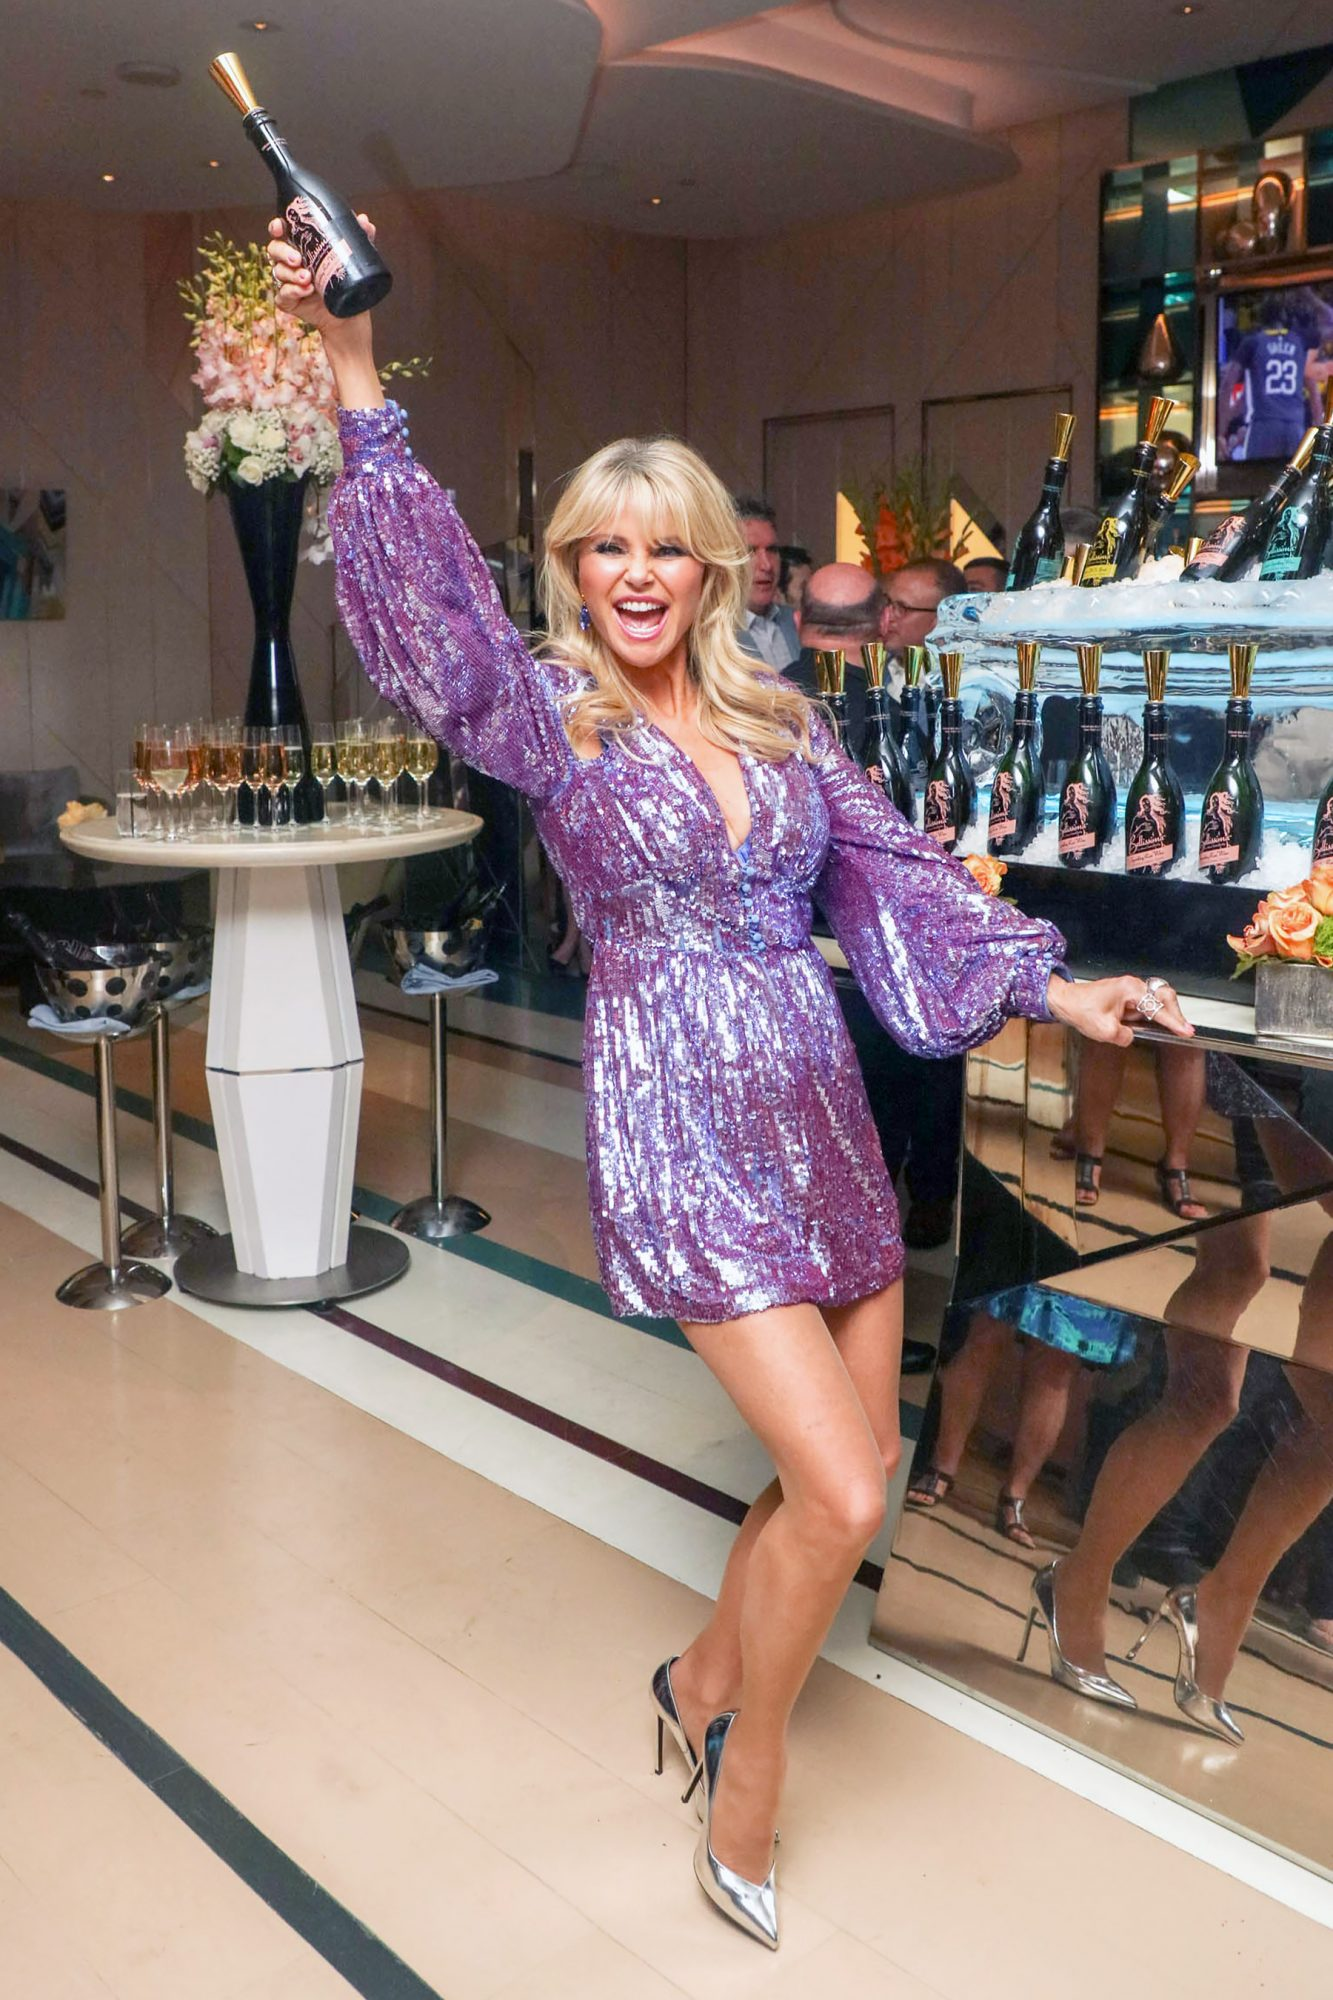 Christie Brinkley Promotes Her Bellissima Prosecco At Wine Spirits Wholesalers Of America Convention